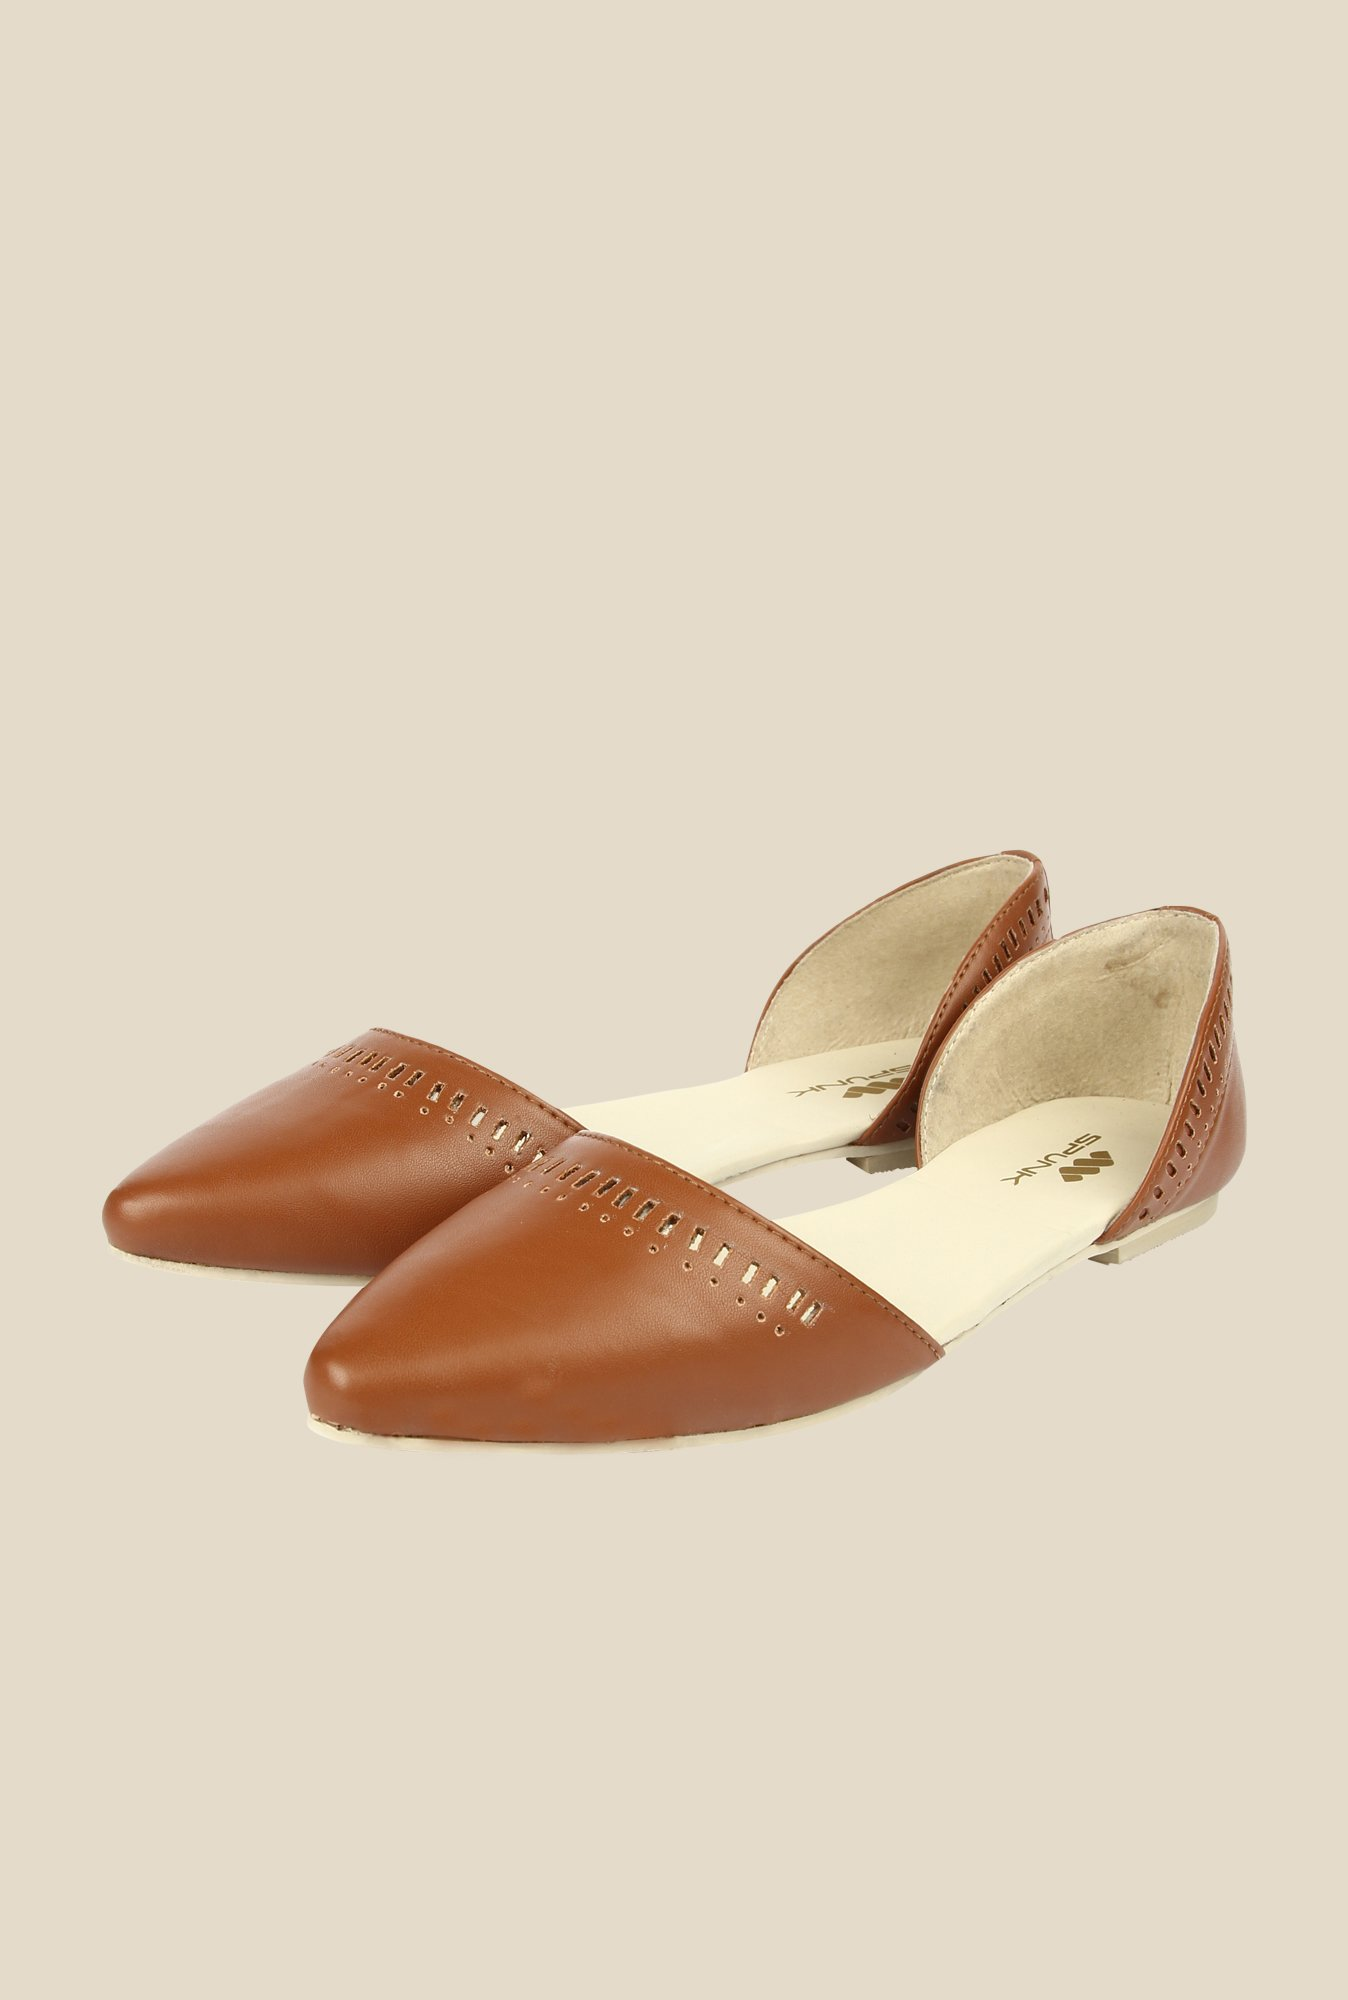 Spunk Radiance Brown D'orsay Flats